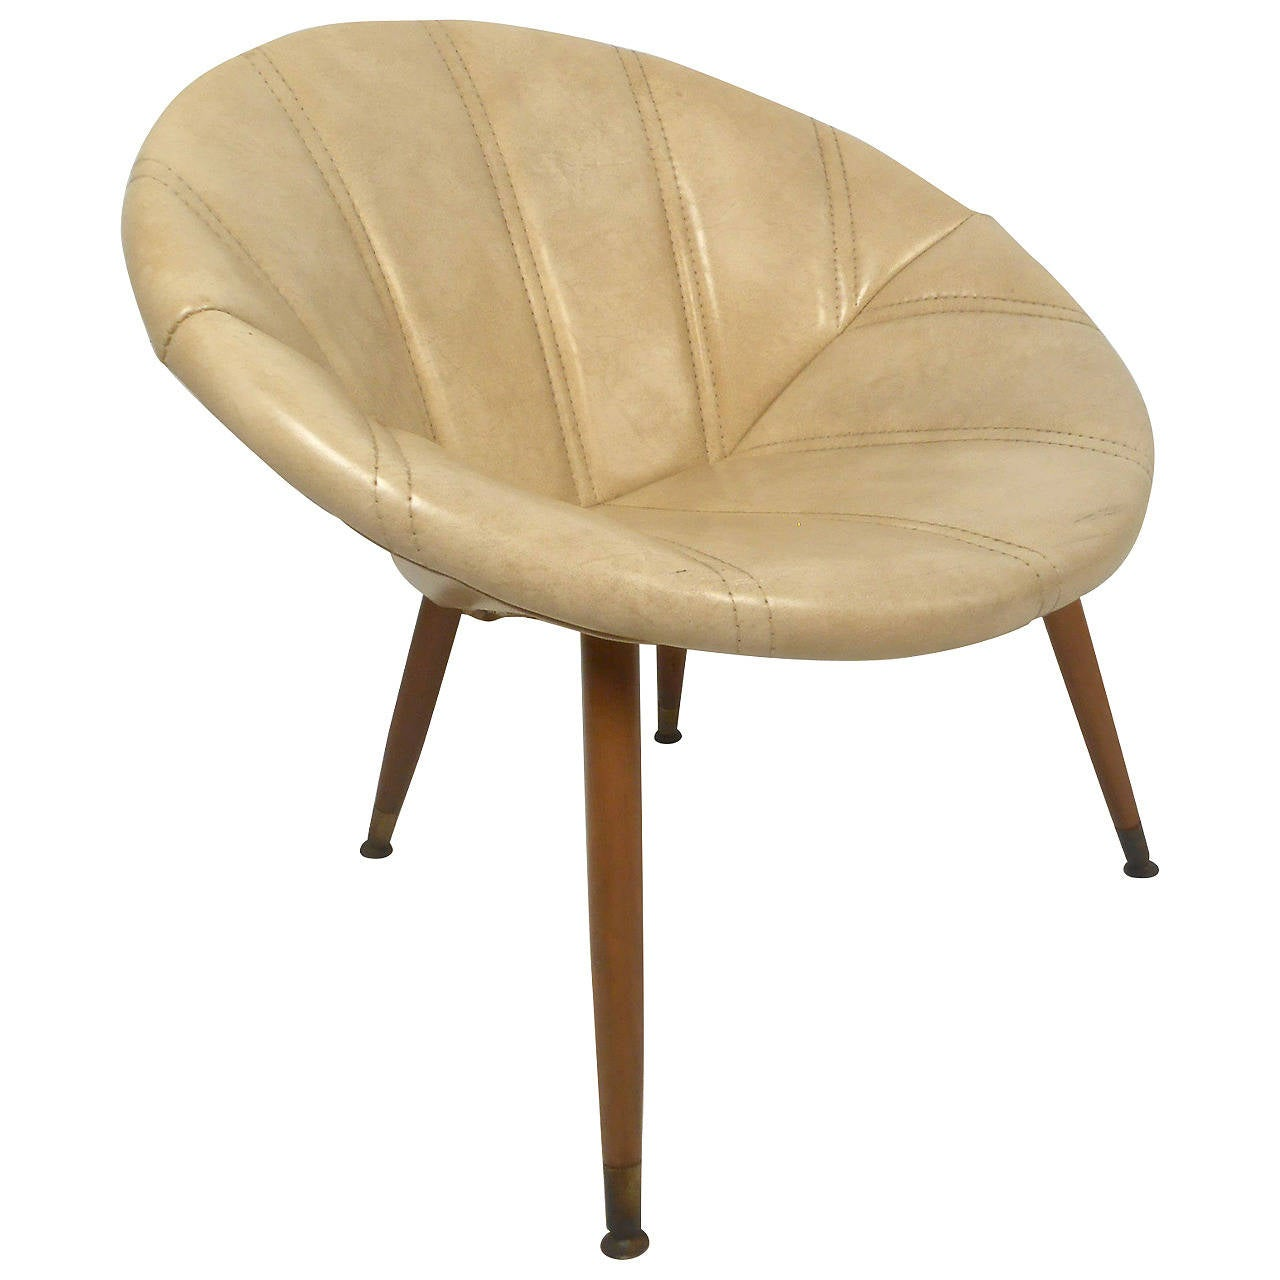 saucer chair for kids crushed velvet covers round midcentury sale at 1stdibs